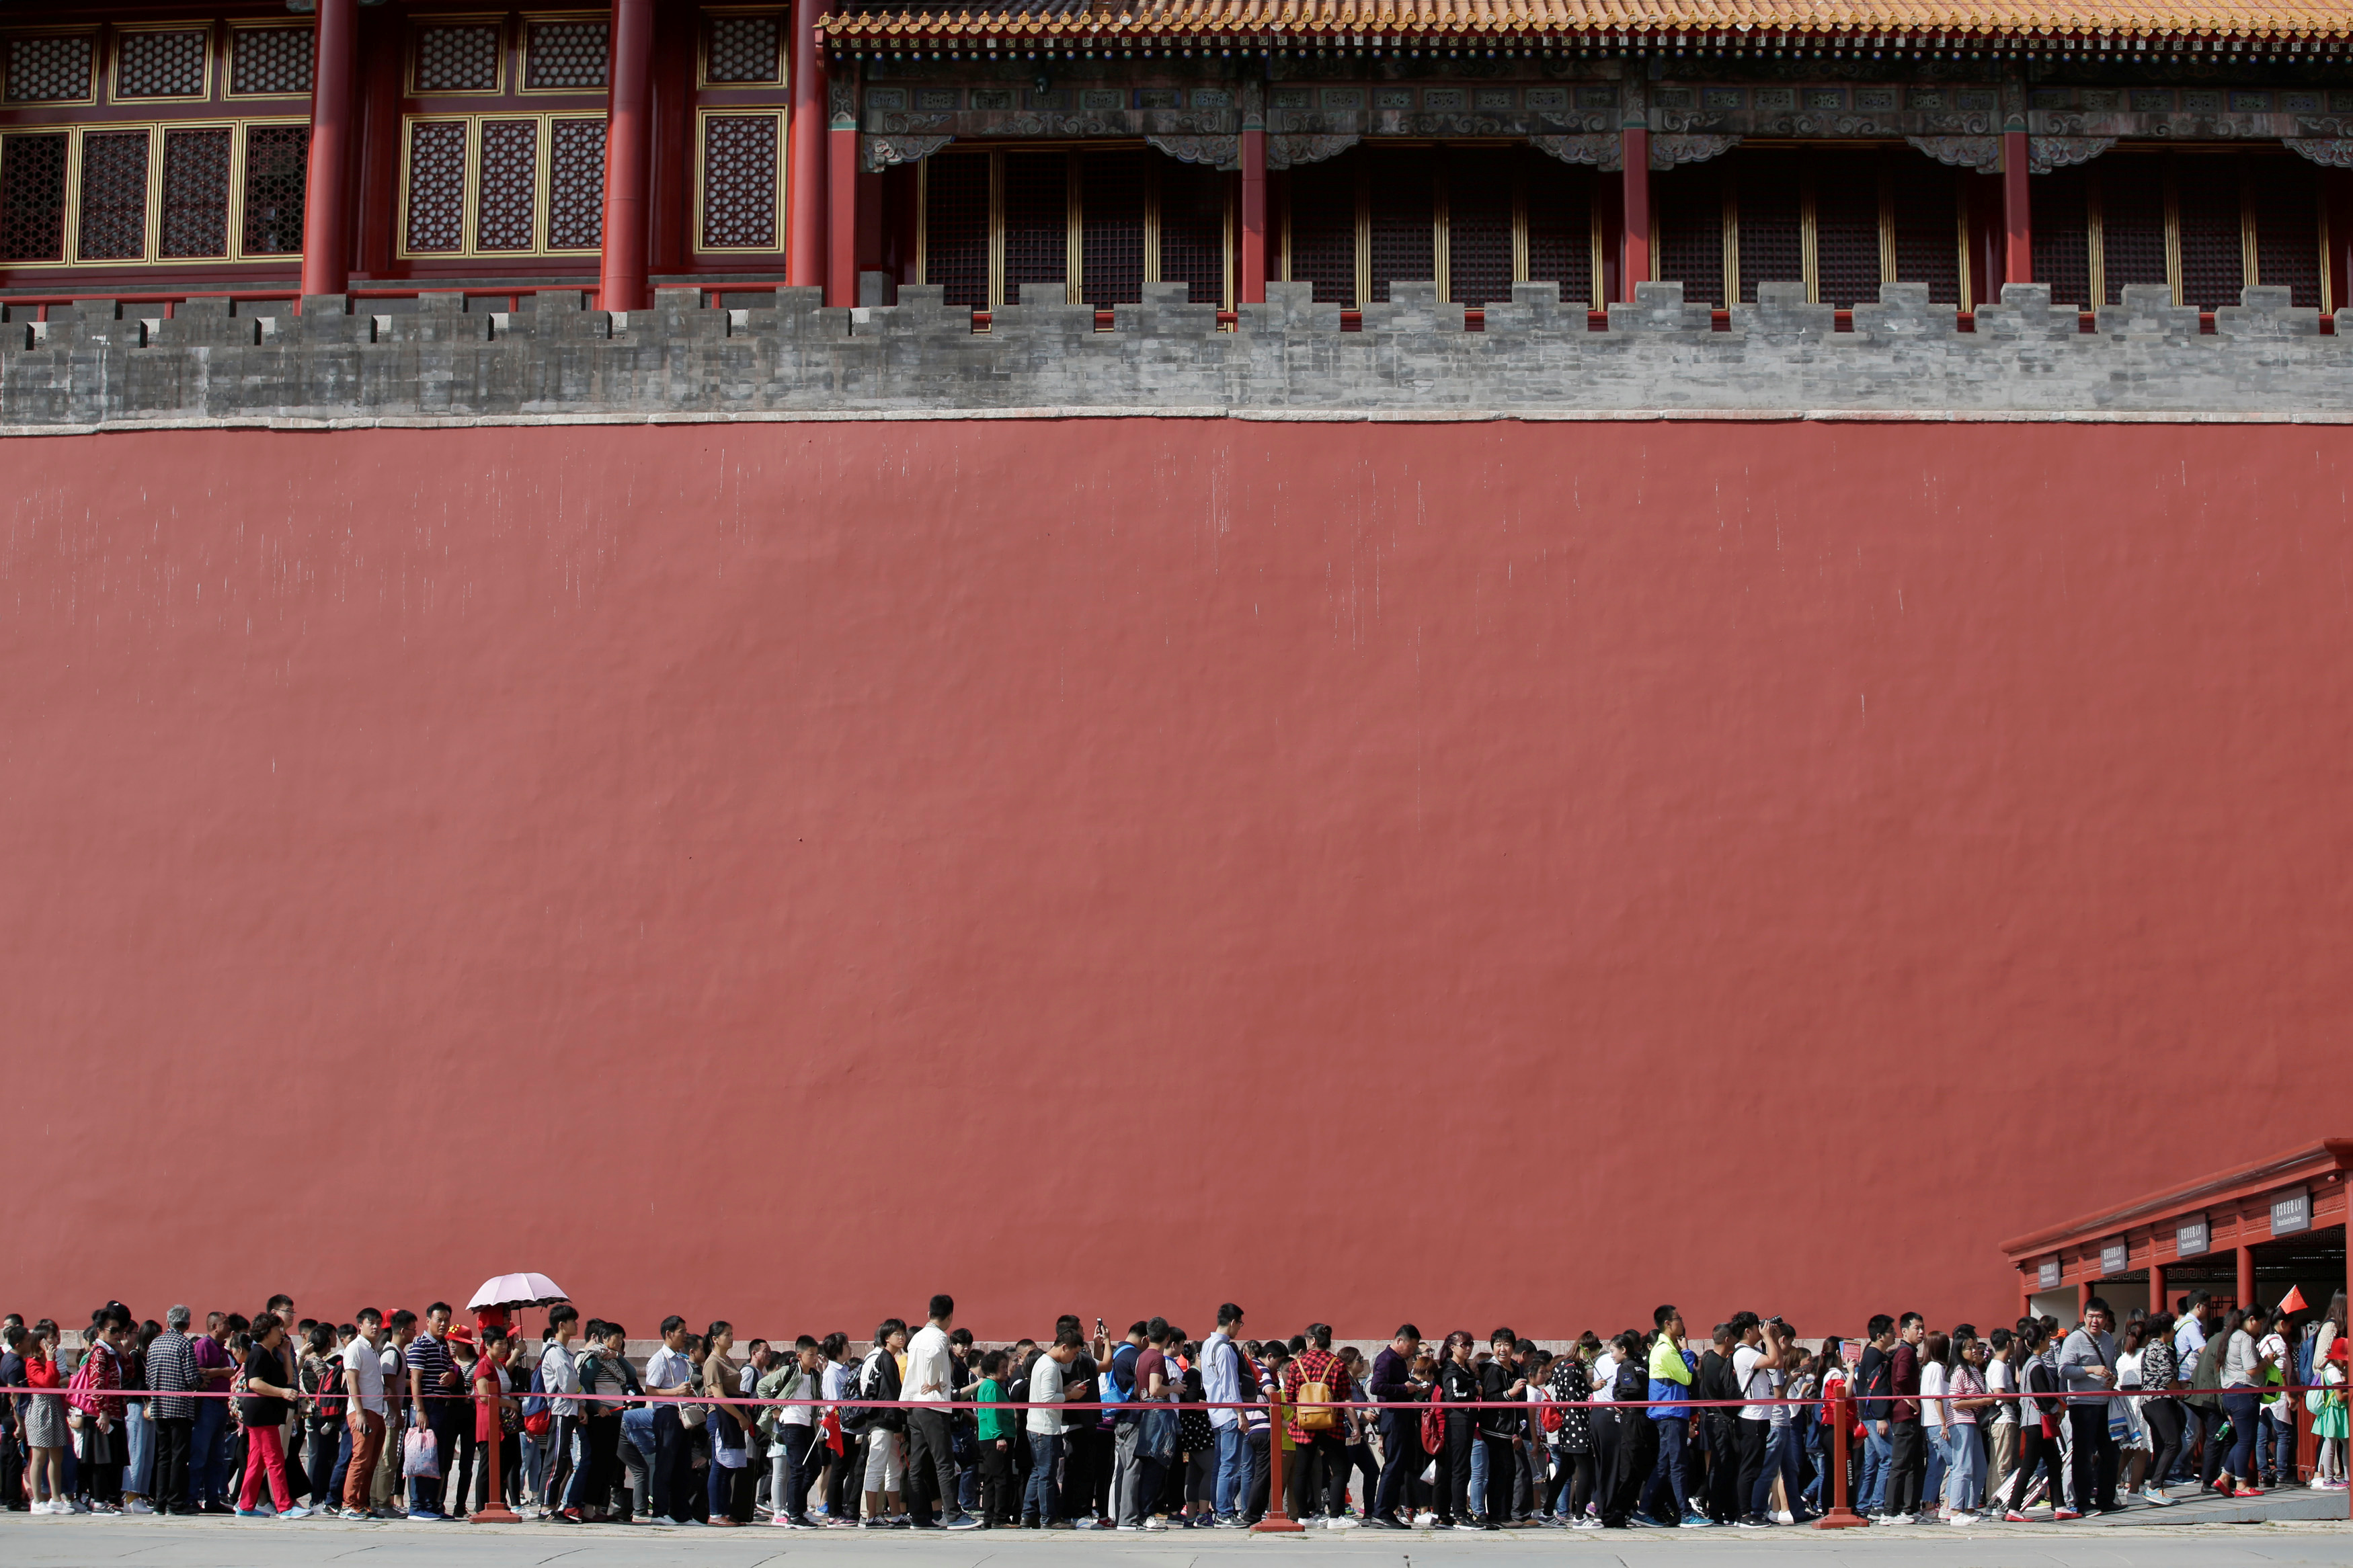 Tourists wait to visit the Forbidden City in central Beijing, China, on China's 68th National Day October 1, 2017. REUTERS/Jason Lee - RC1BE77DF9A0